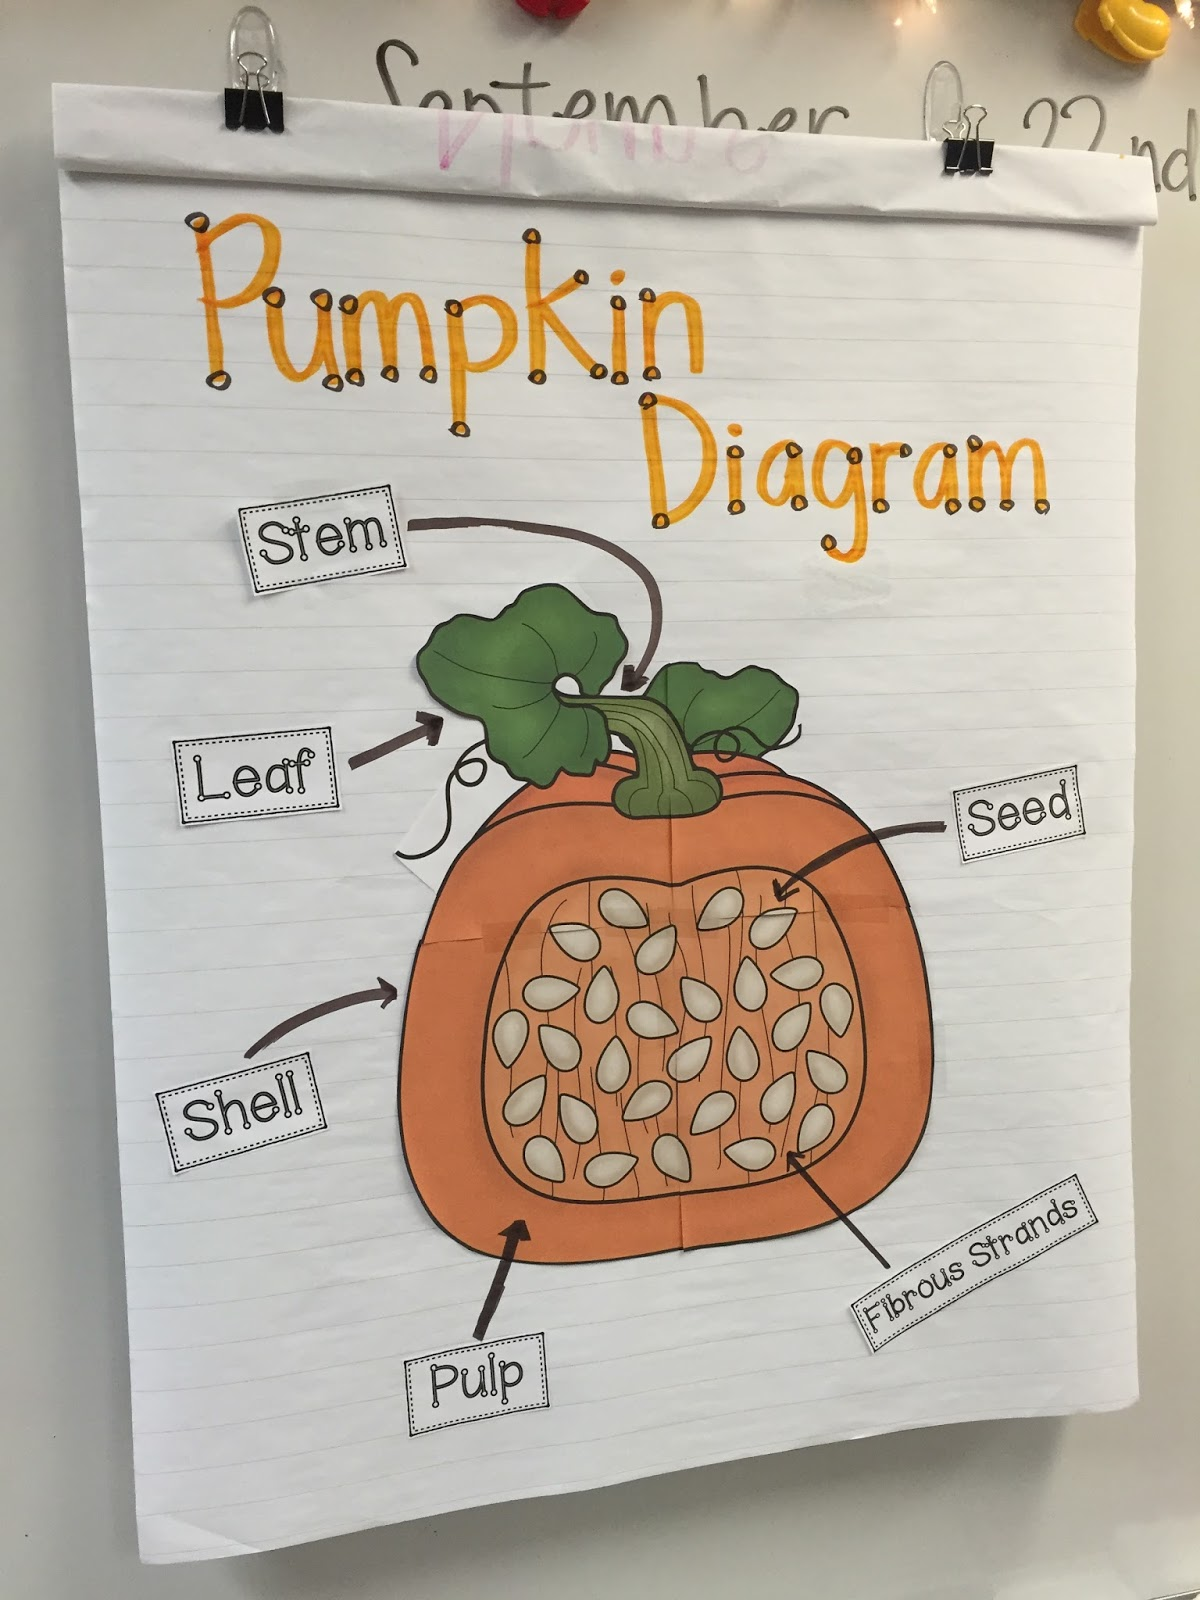 parts of a pumpkin diagram 2006 honda civic wiring going strong in 2nd grade it 39s punkin 39 day or will be